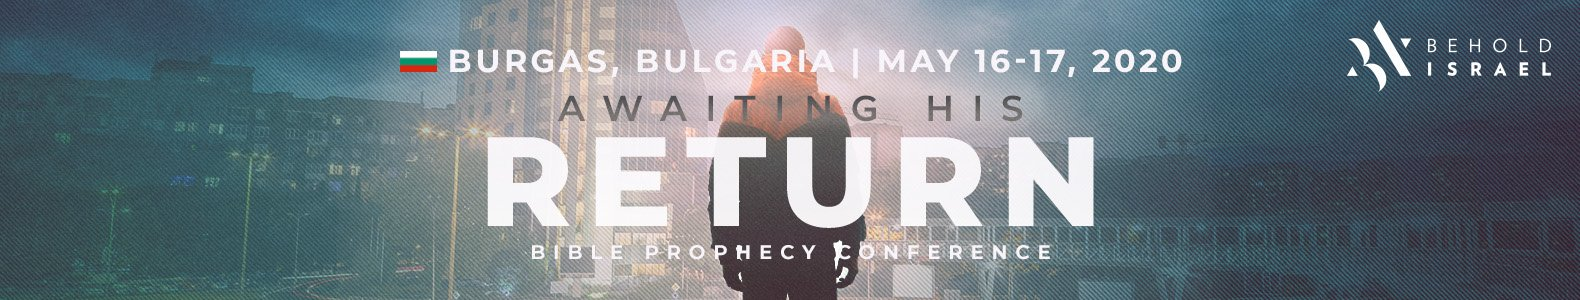 Awaiting His Return Conference 2020 Bulgaria